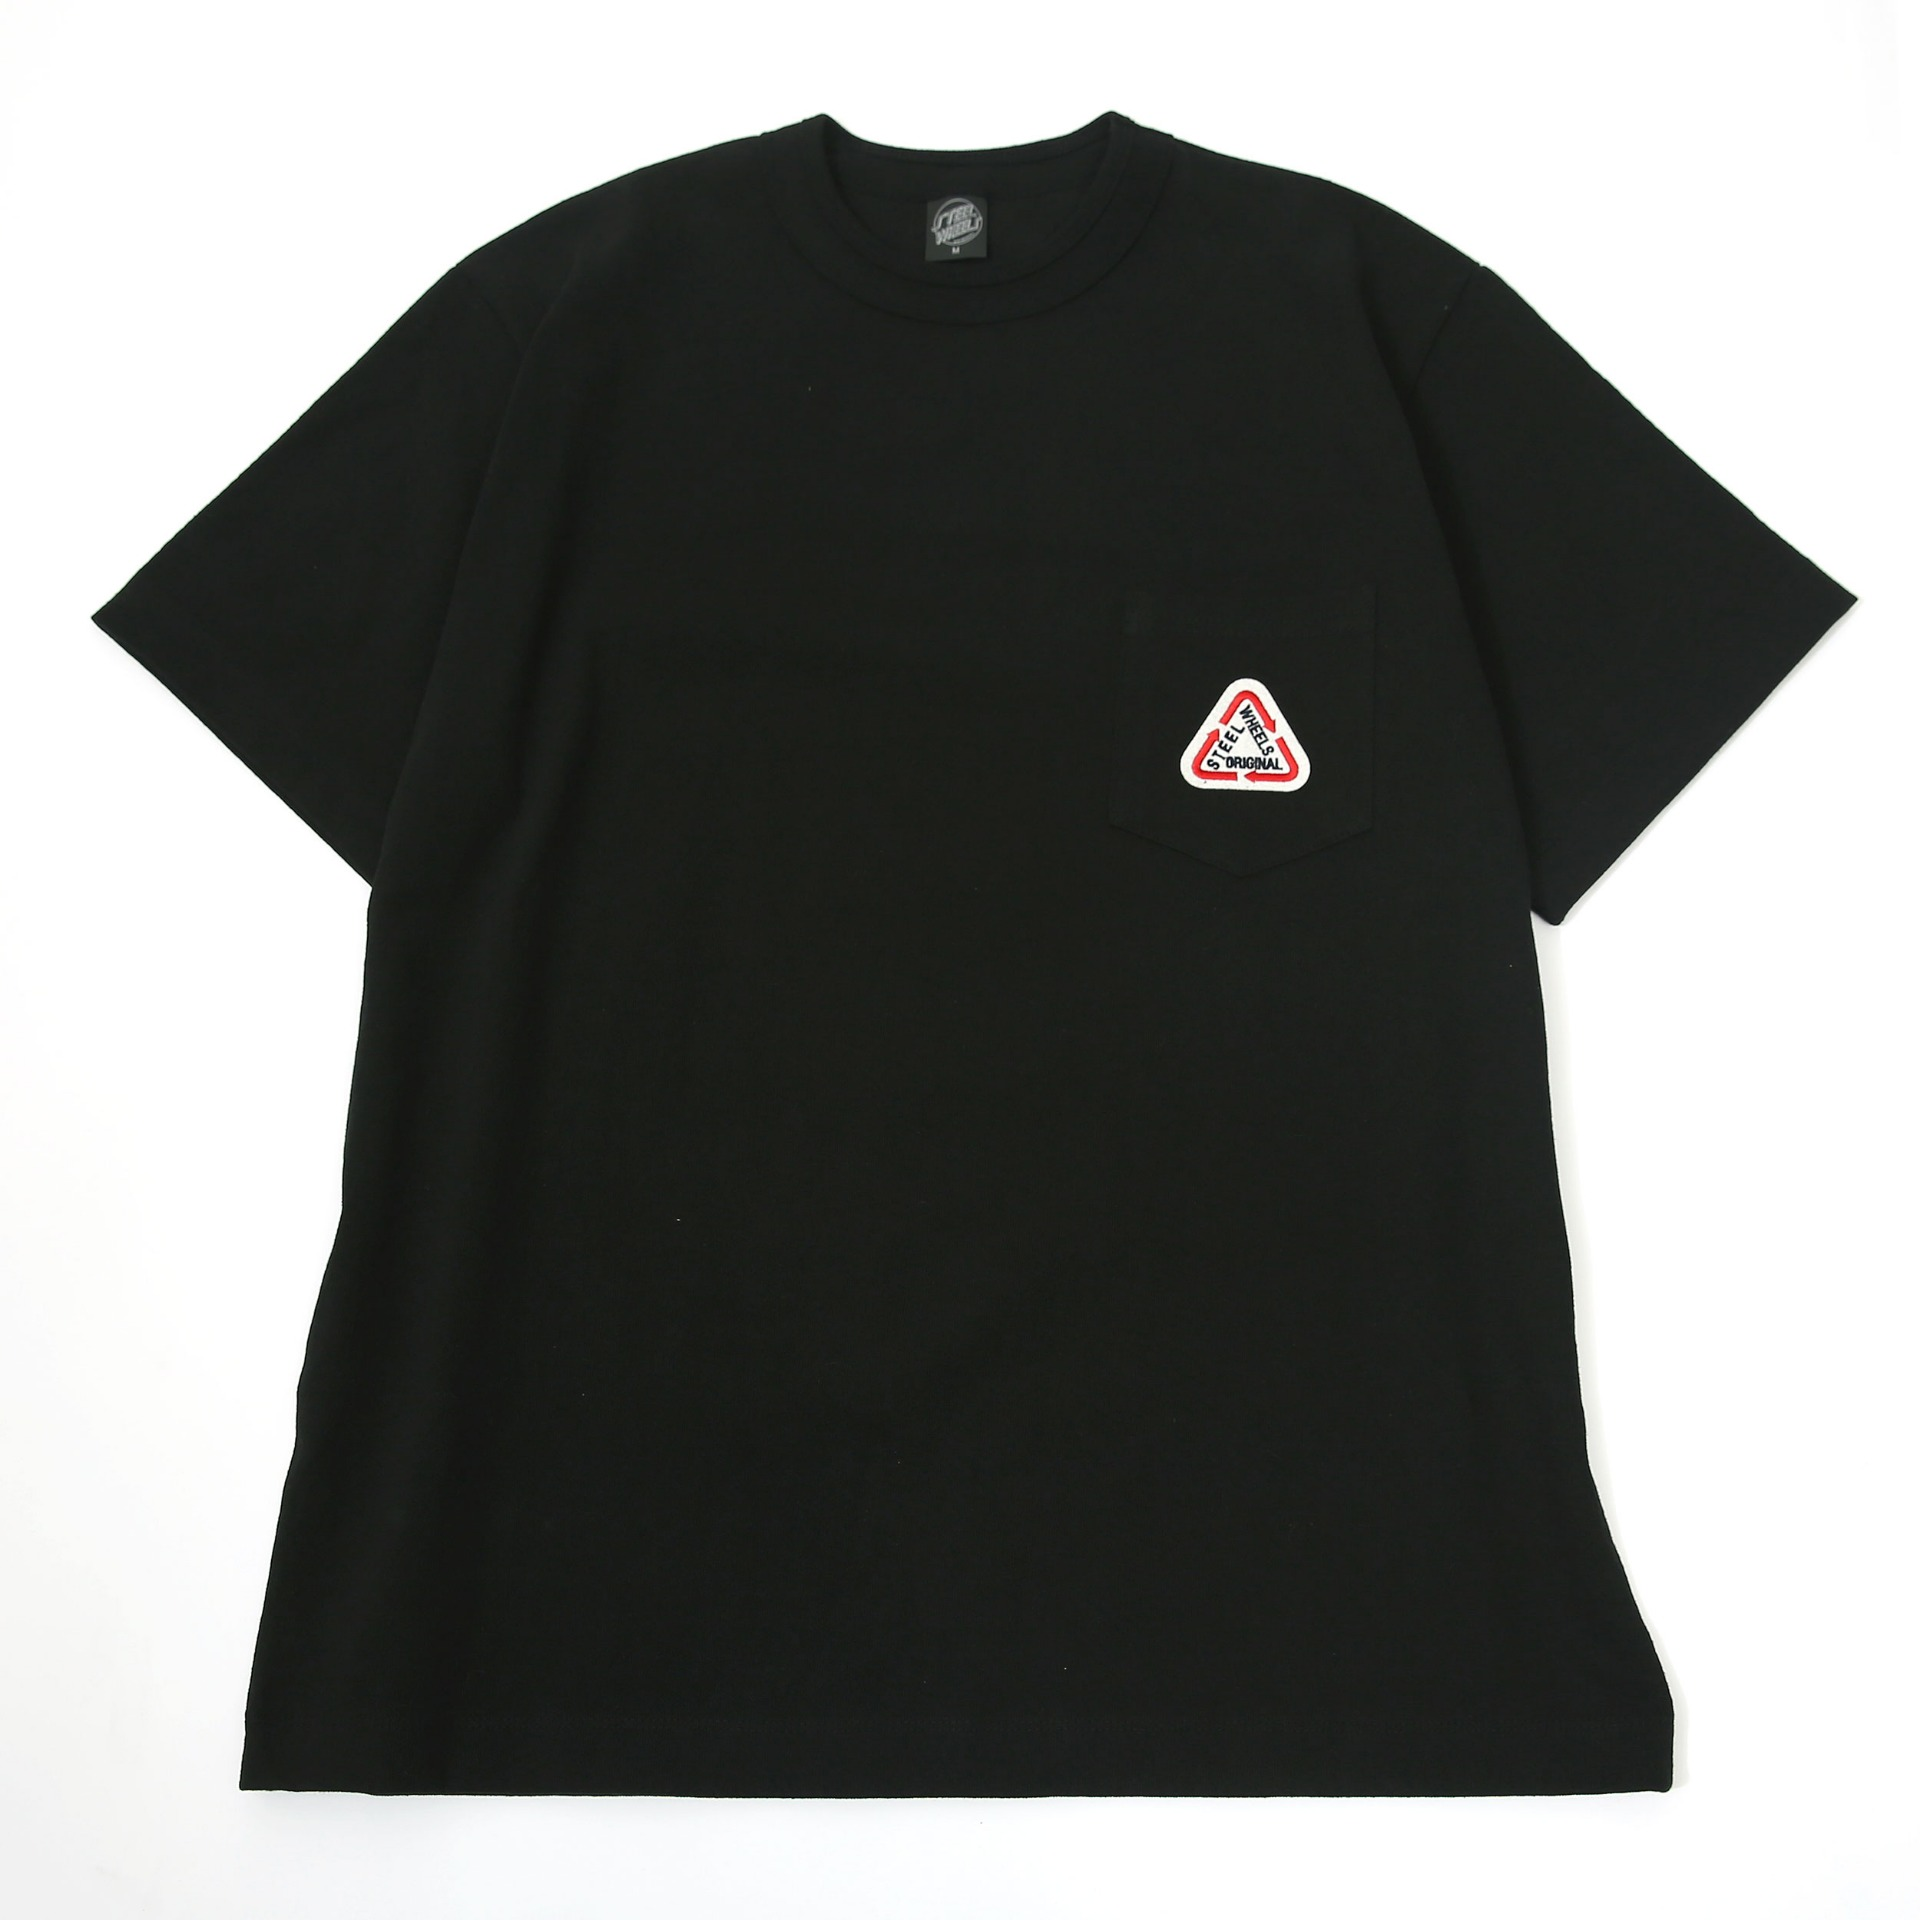 S LOGO POCKET T-SHIRT(BLACK)